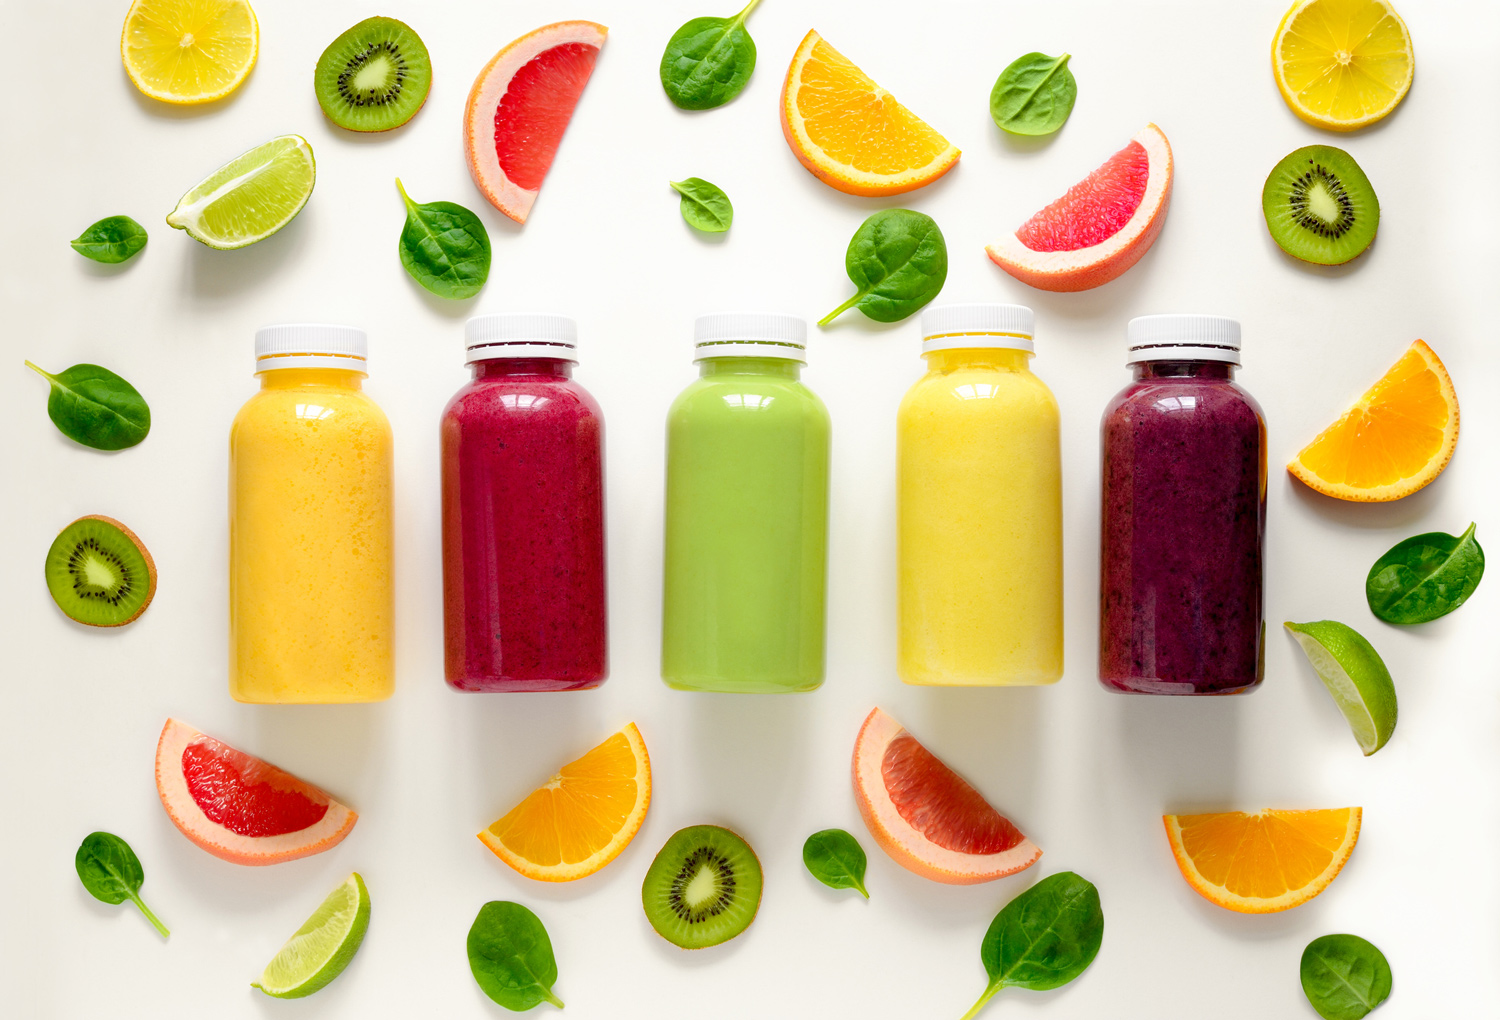 Bottles-of-juice-and-fruits-flatlay-spinach-lime-oranges.jpg